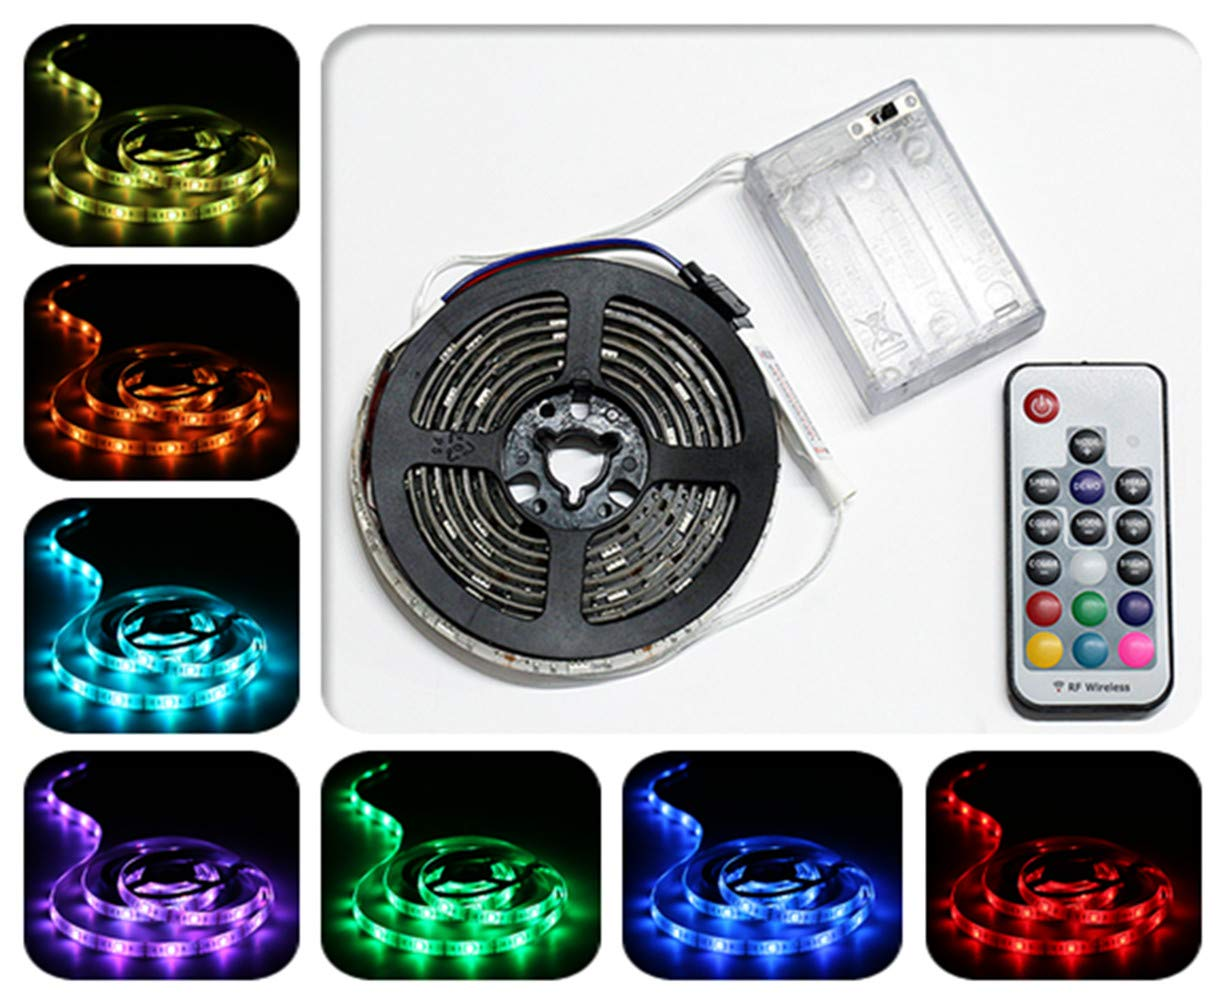 ACONDE Battery Powered LED Strip Lights RF Remote Controlled Multi Color Changing DIY Indoor and Outdoor Decoration 6.56ft 2M Waterproof